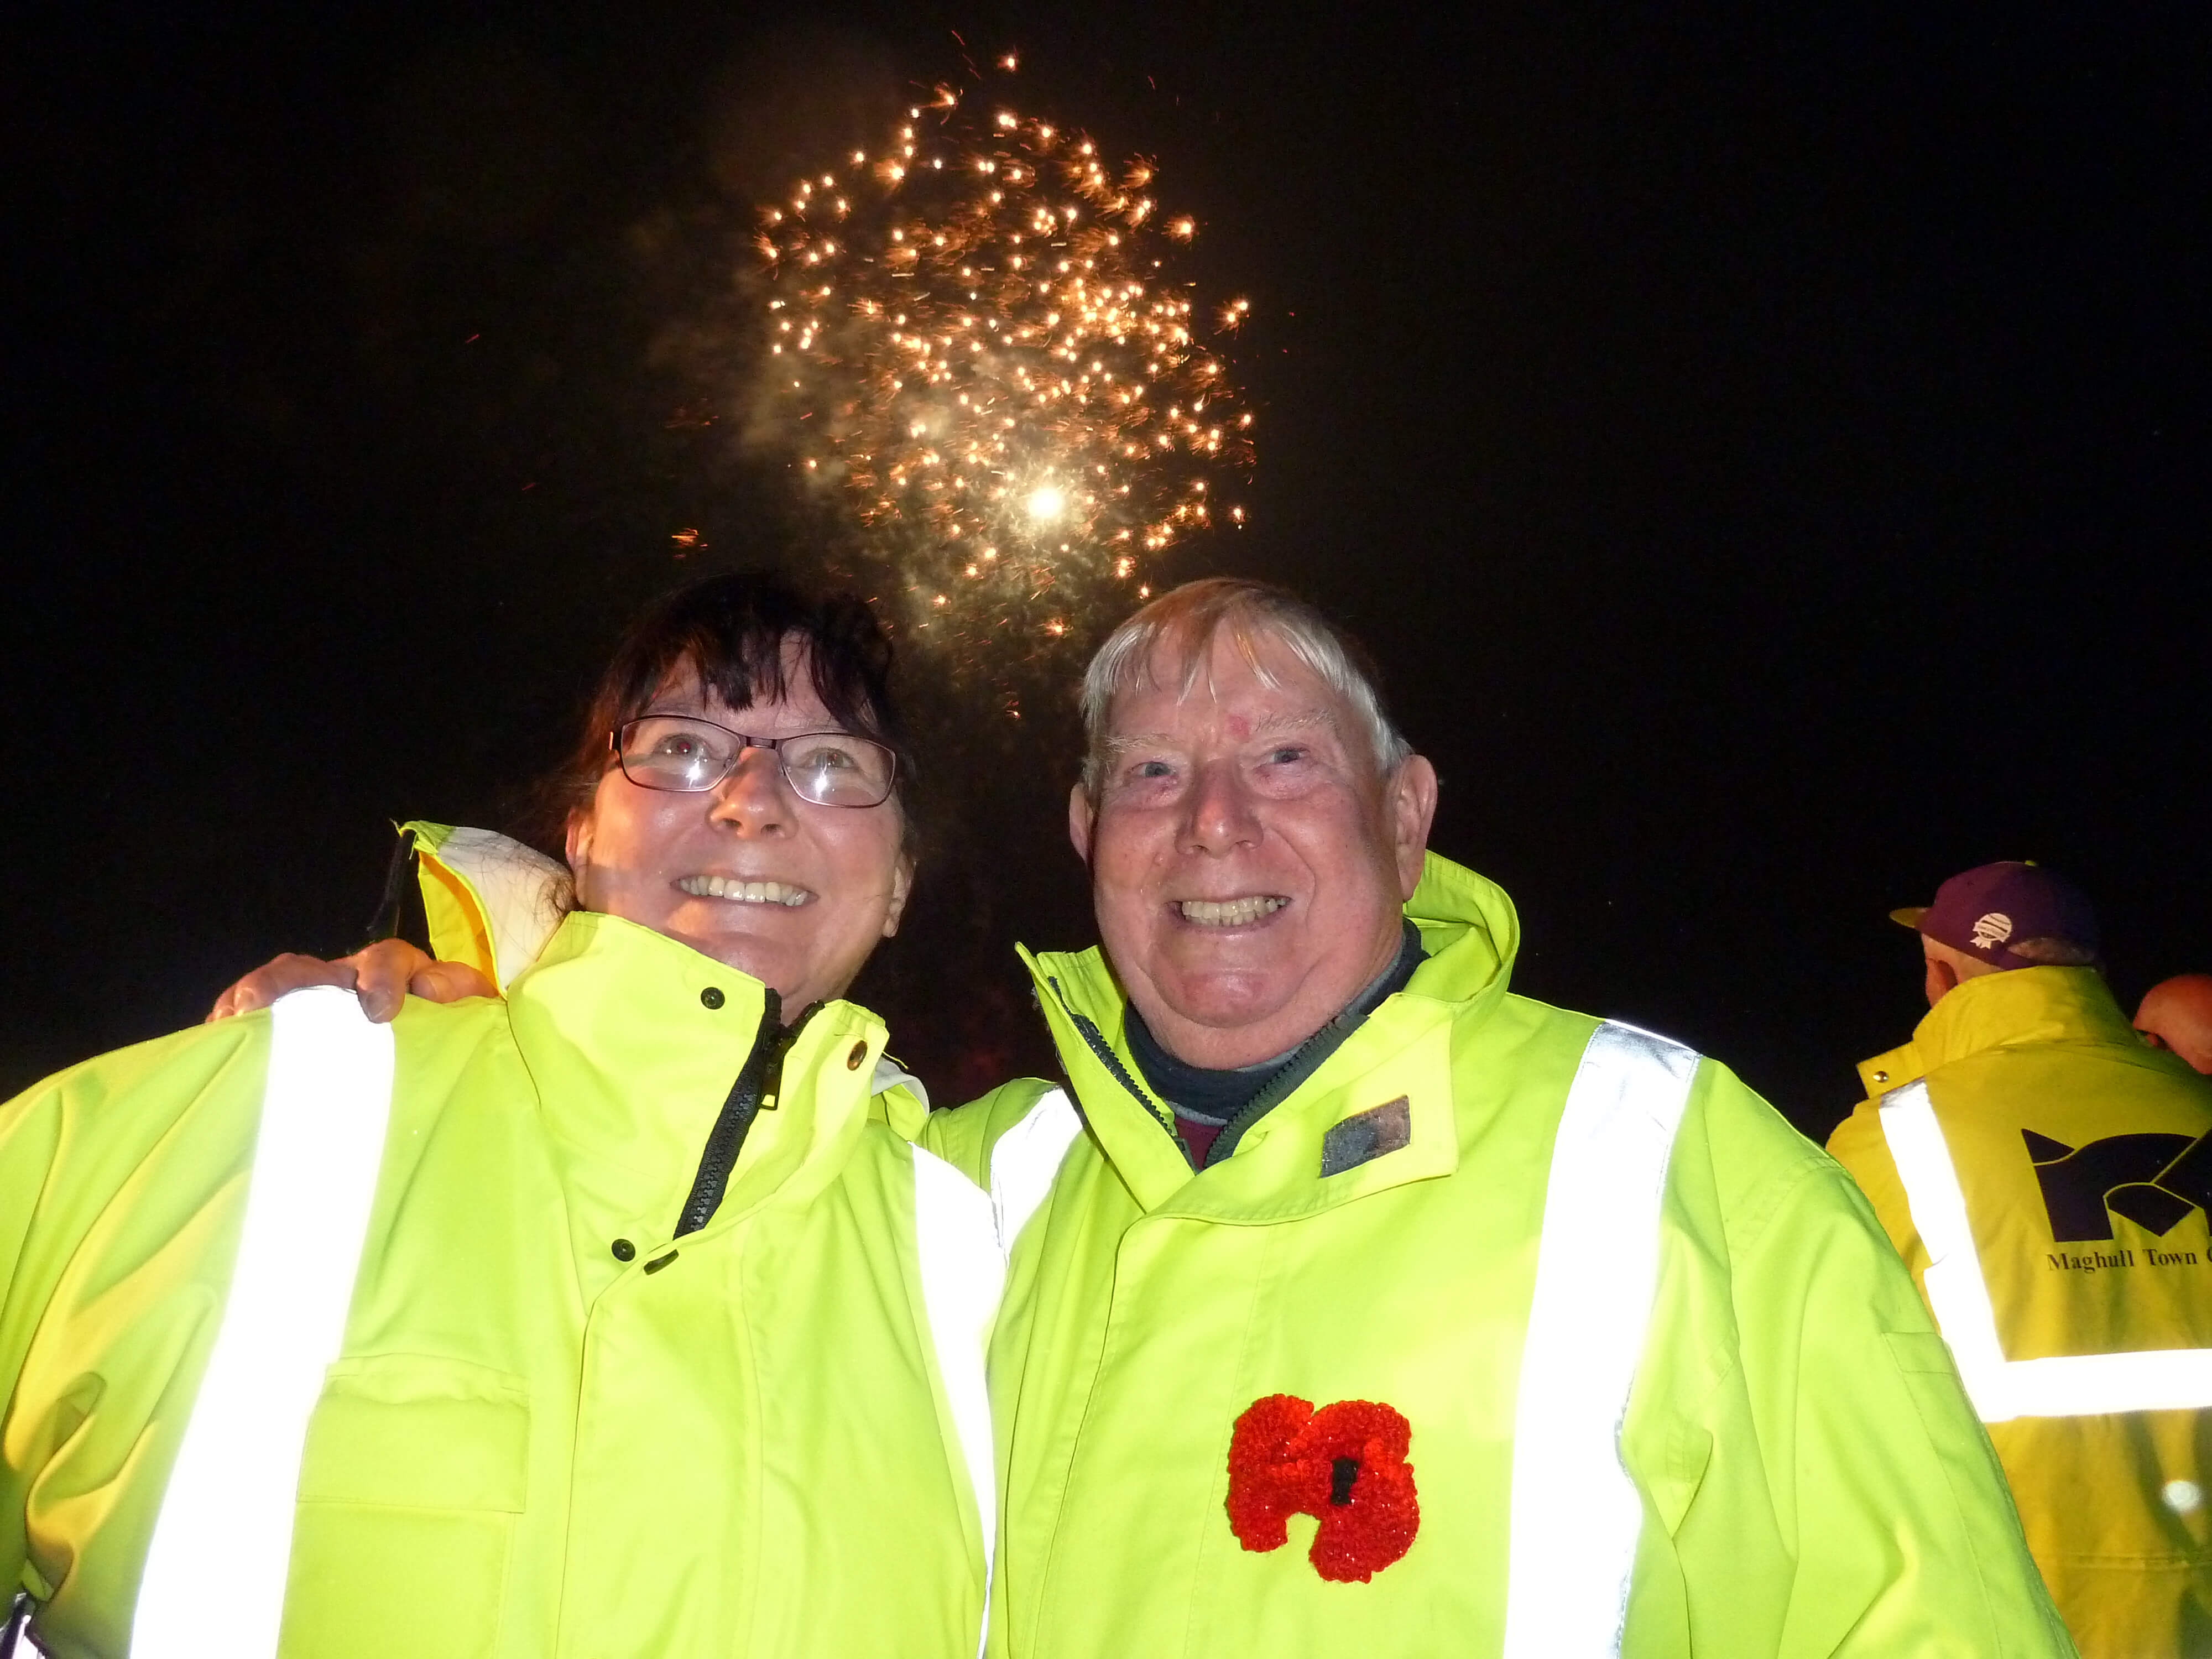 Maghull Town Council clerk Angela McIntyre and community volunteer Dave Hughes.